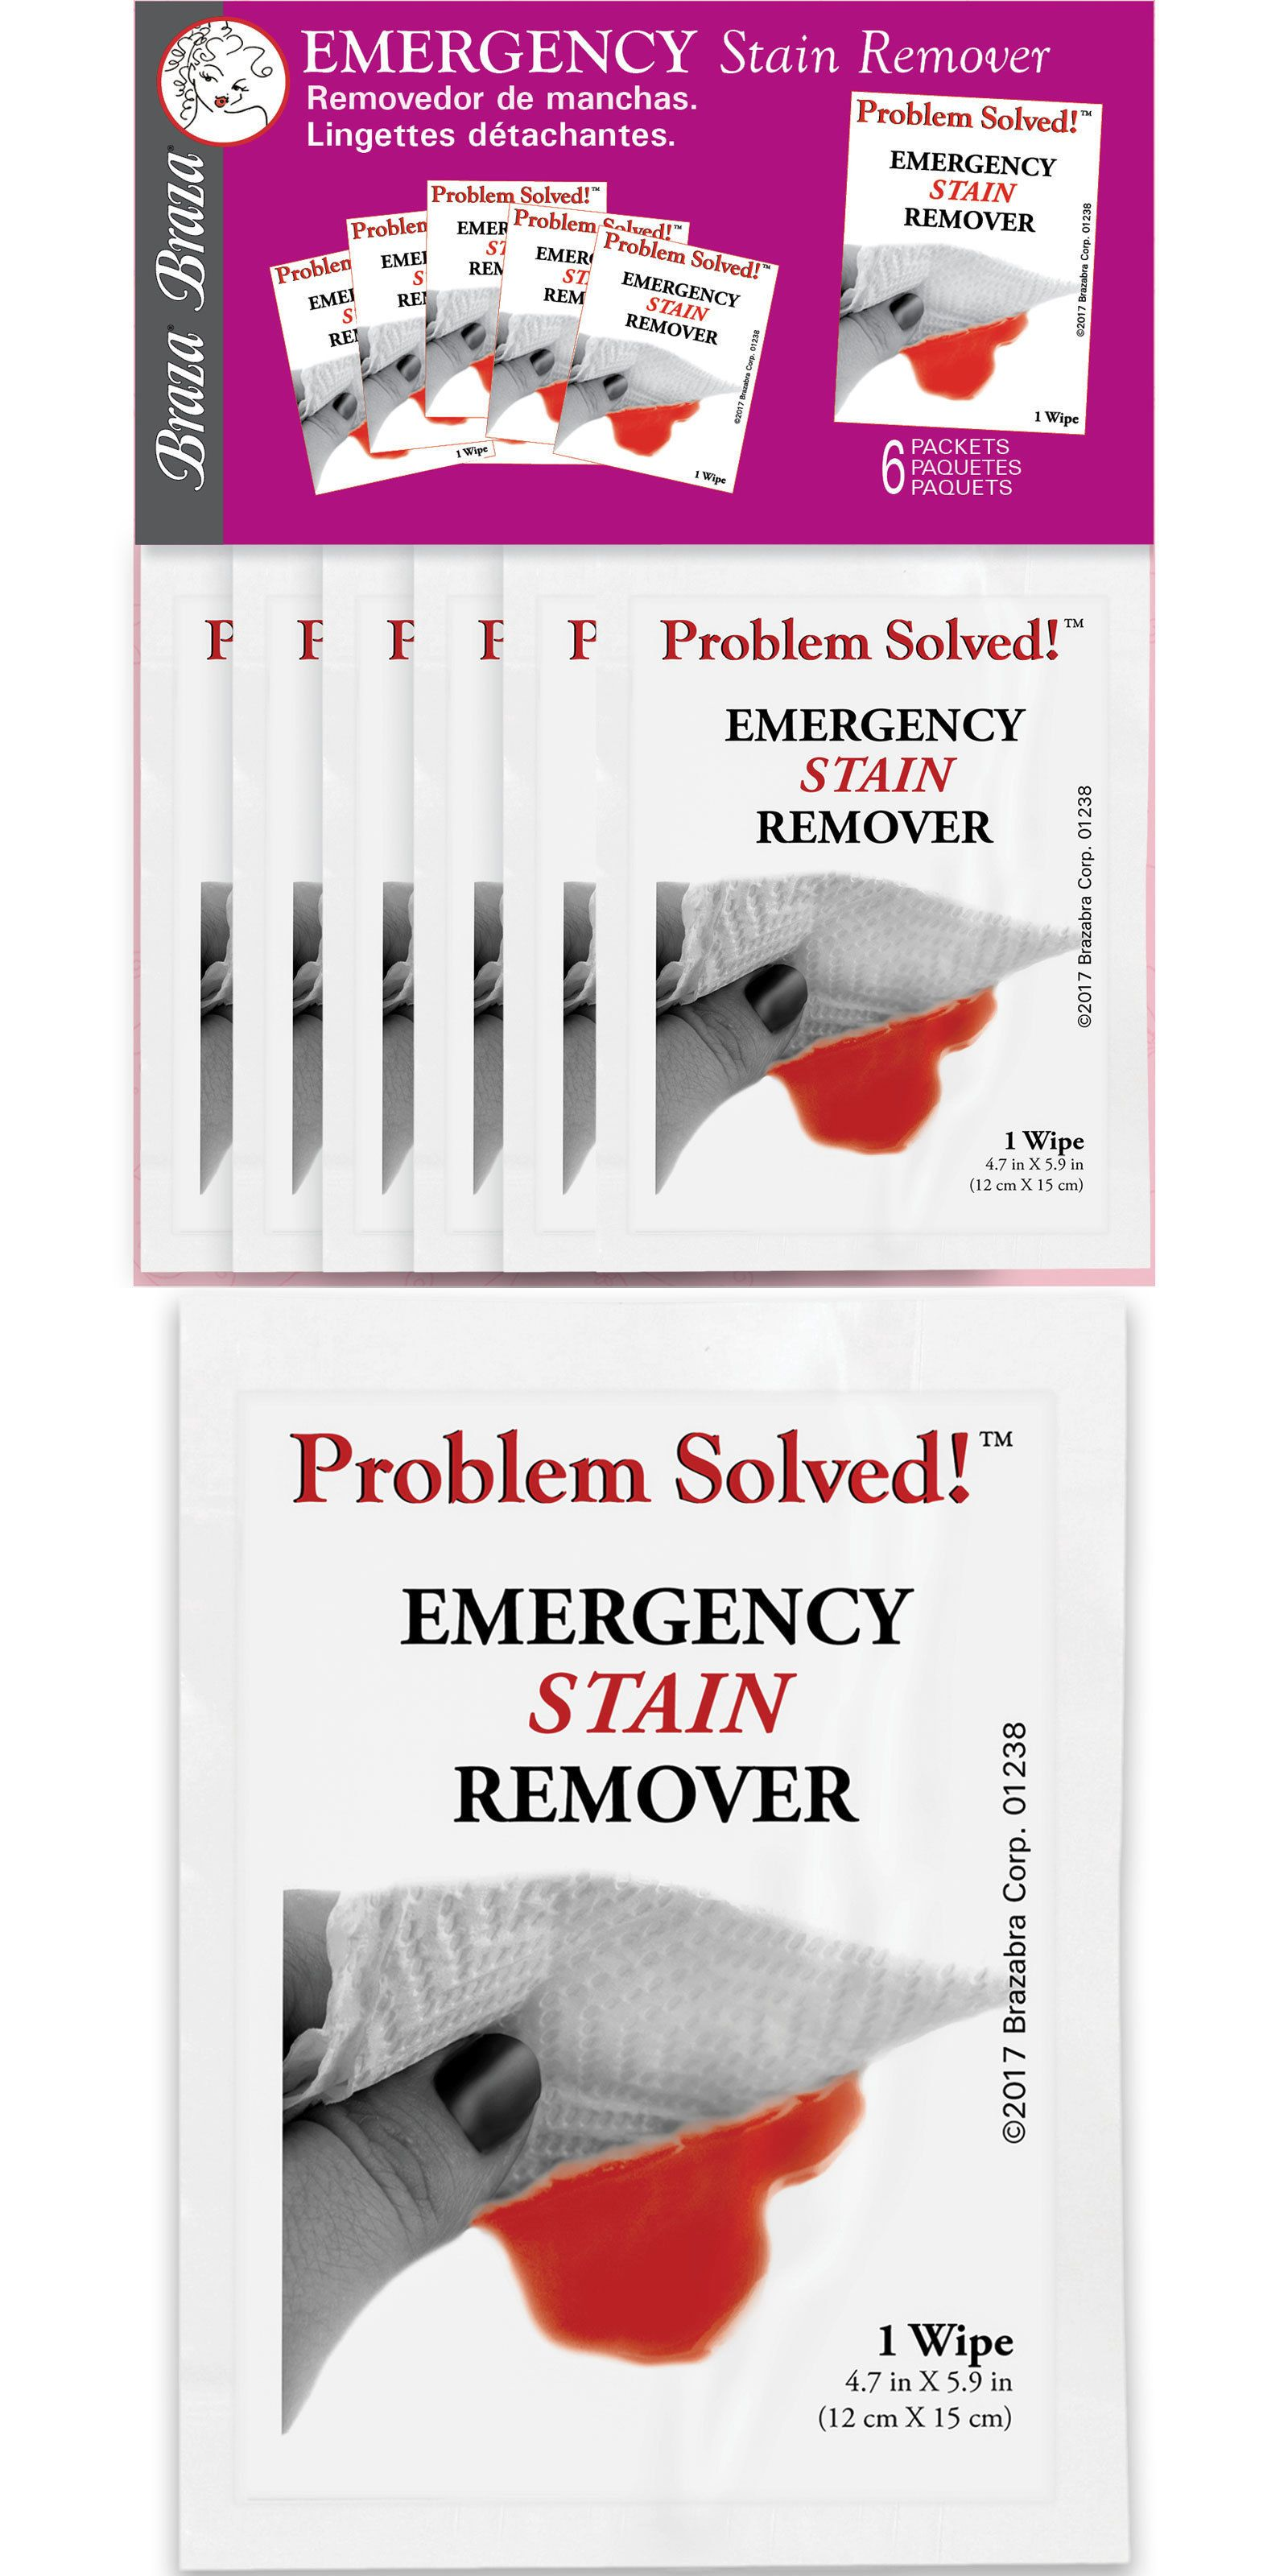 Details About Braza Emergency Stain Remover Towelettes On The Go